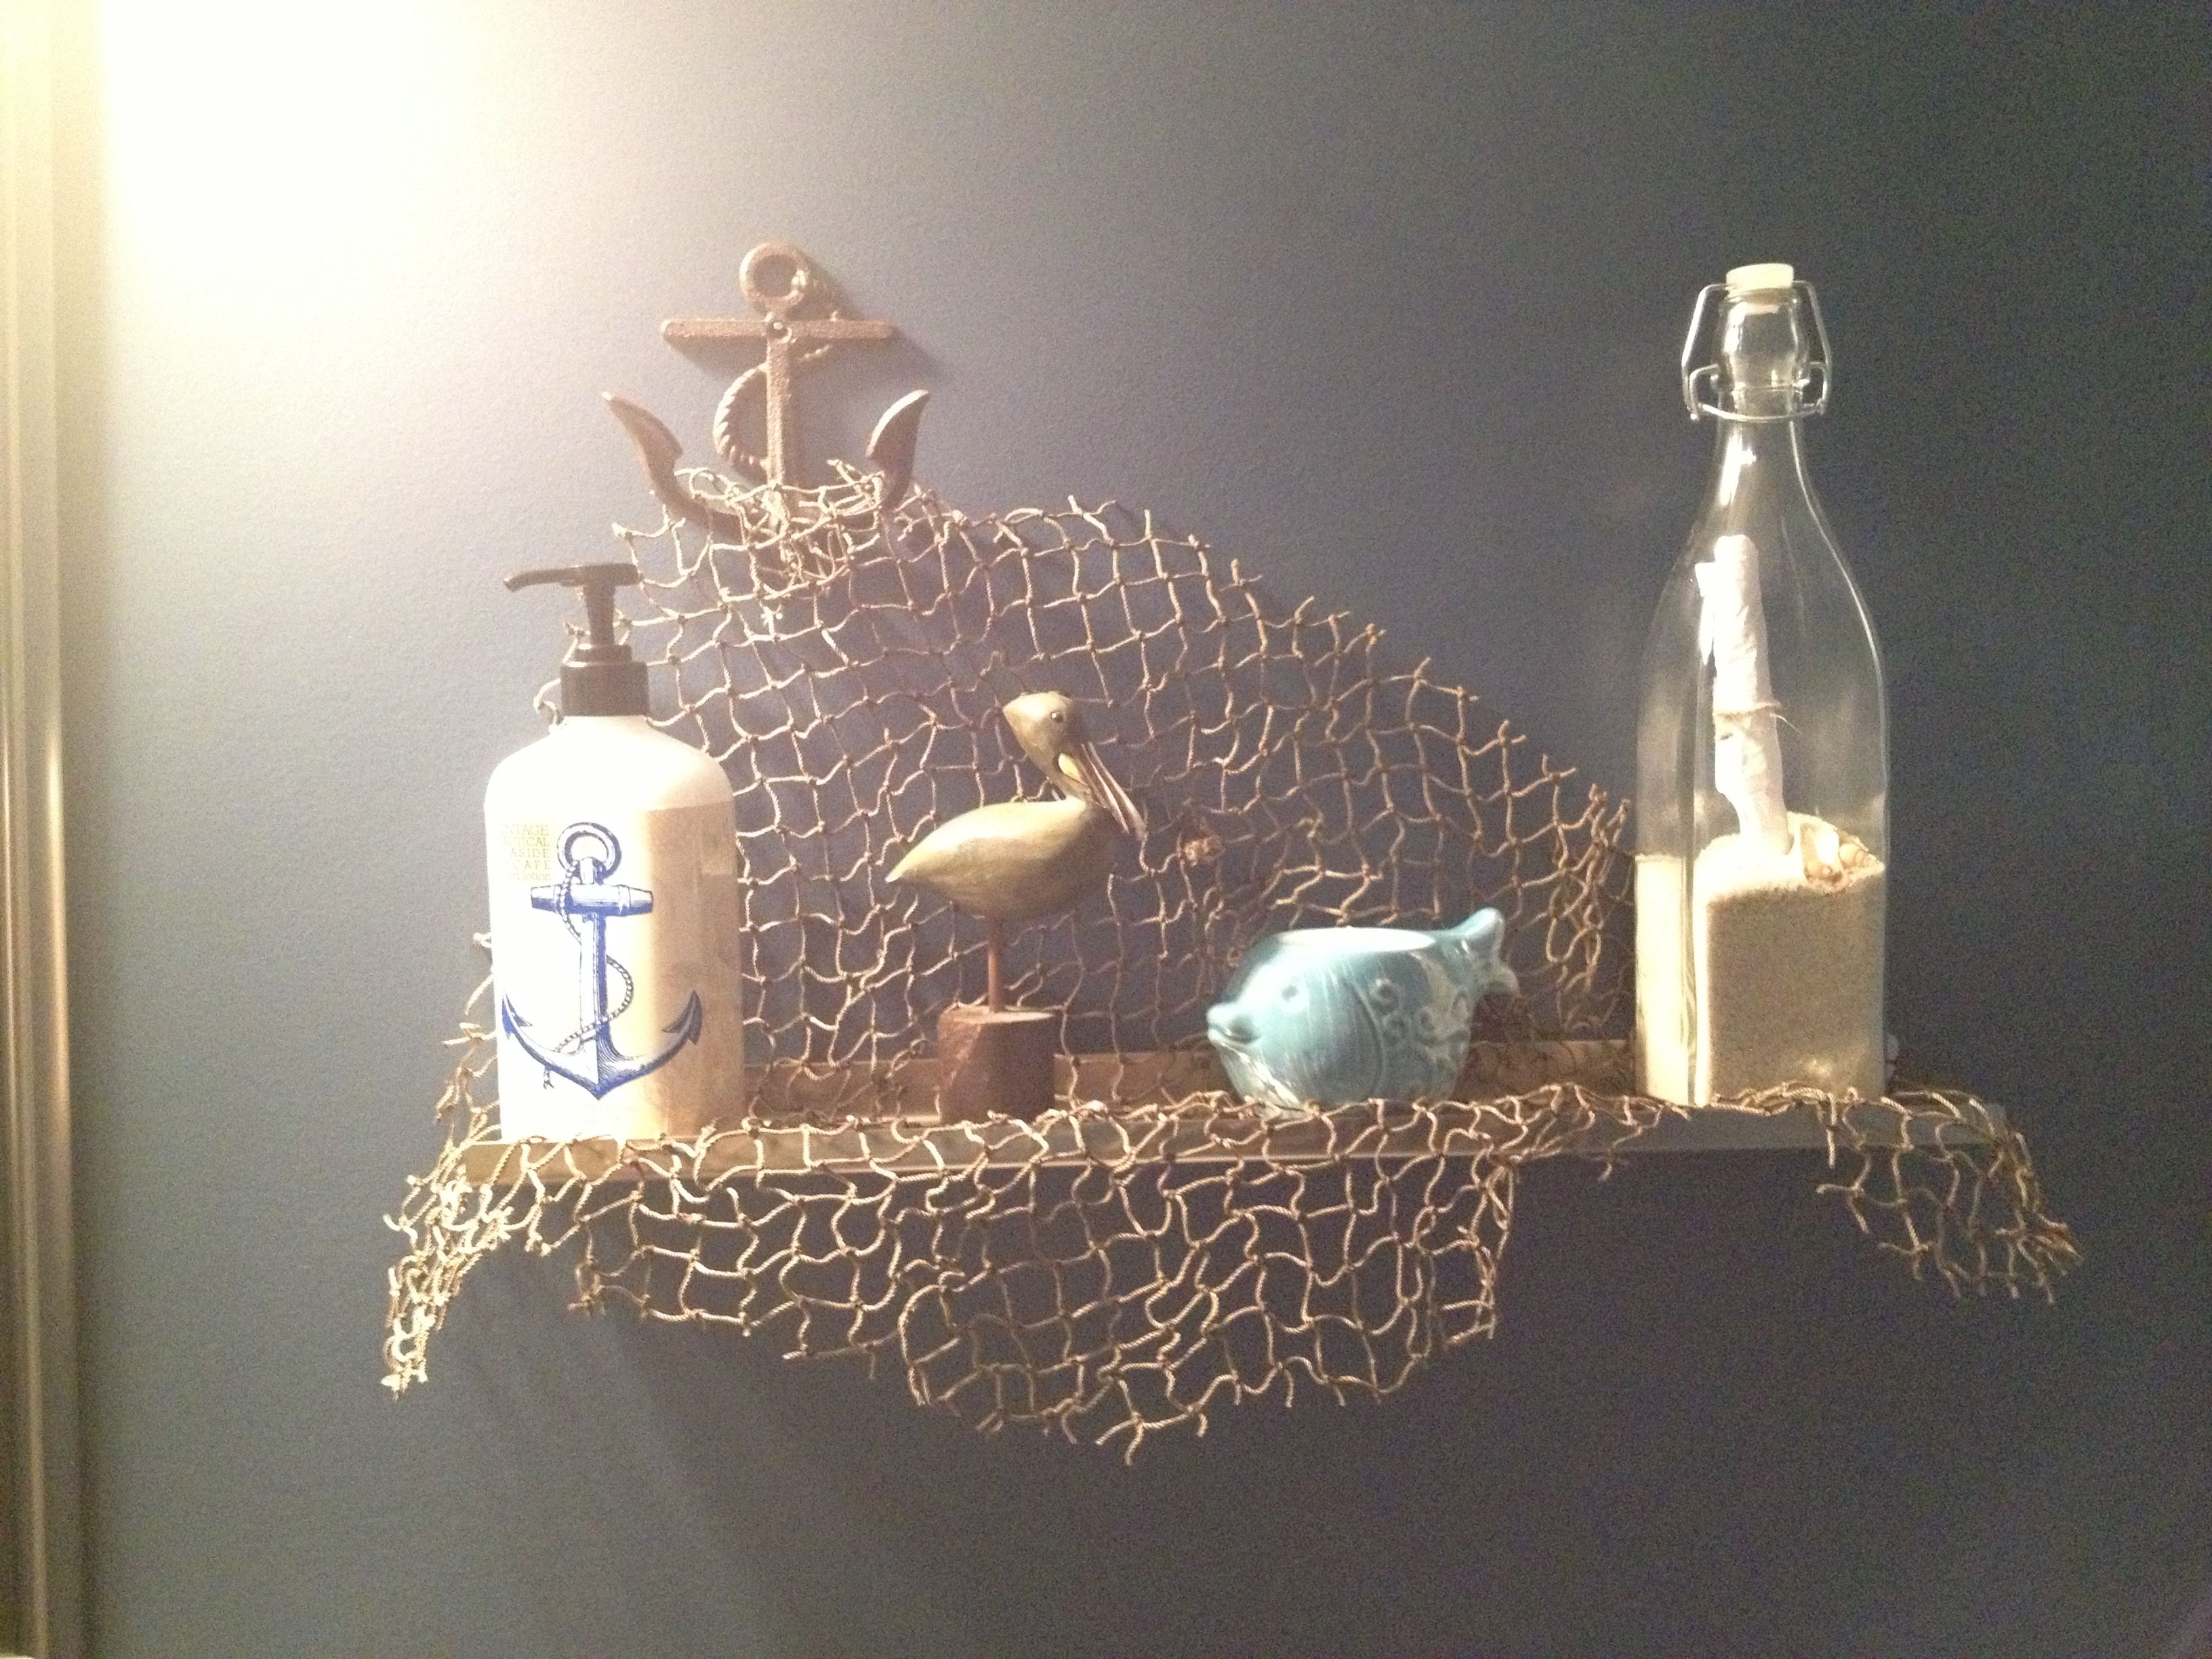 17 best ideas about nautical theme bathroom on pinterest | sea